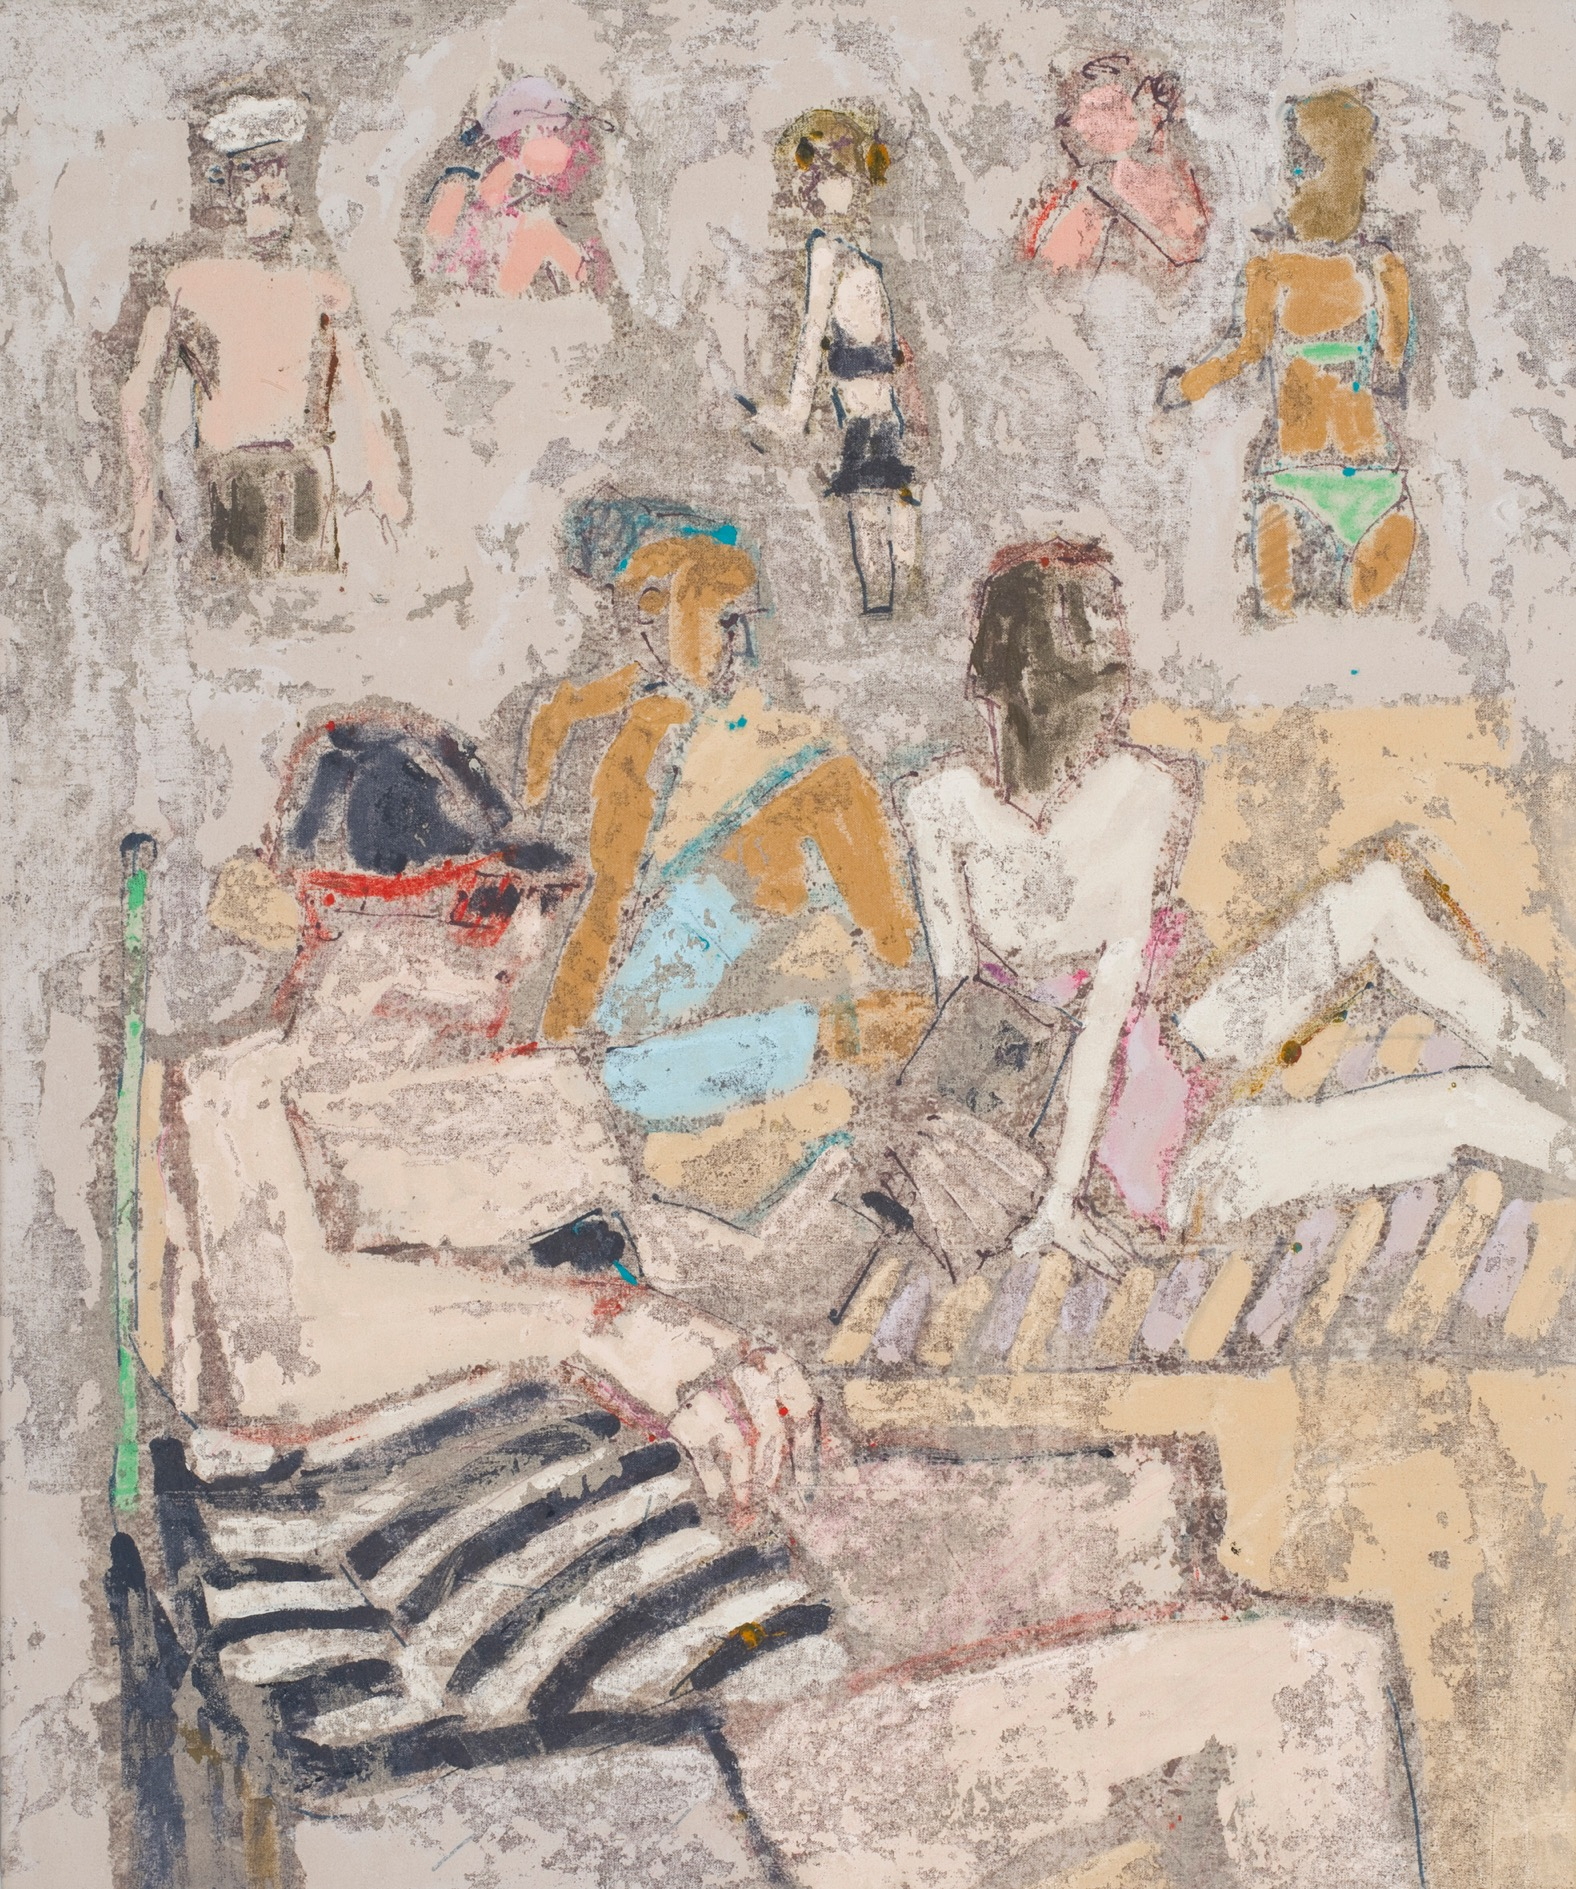 0.3 Silky beach day 91x76cm